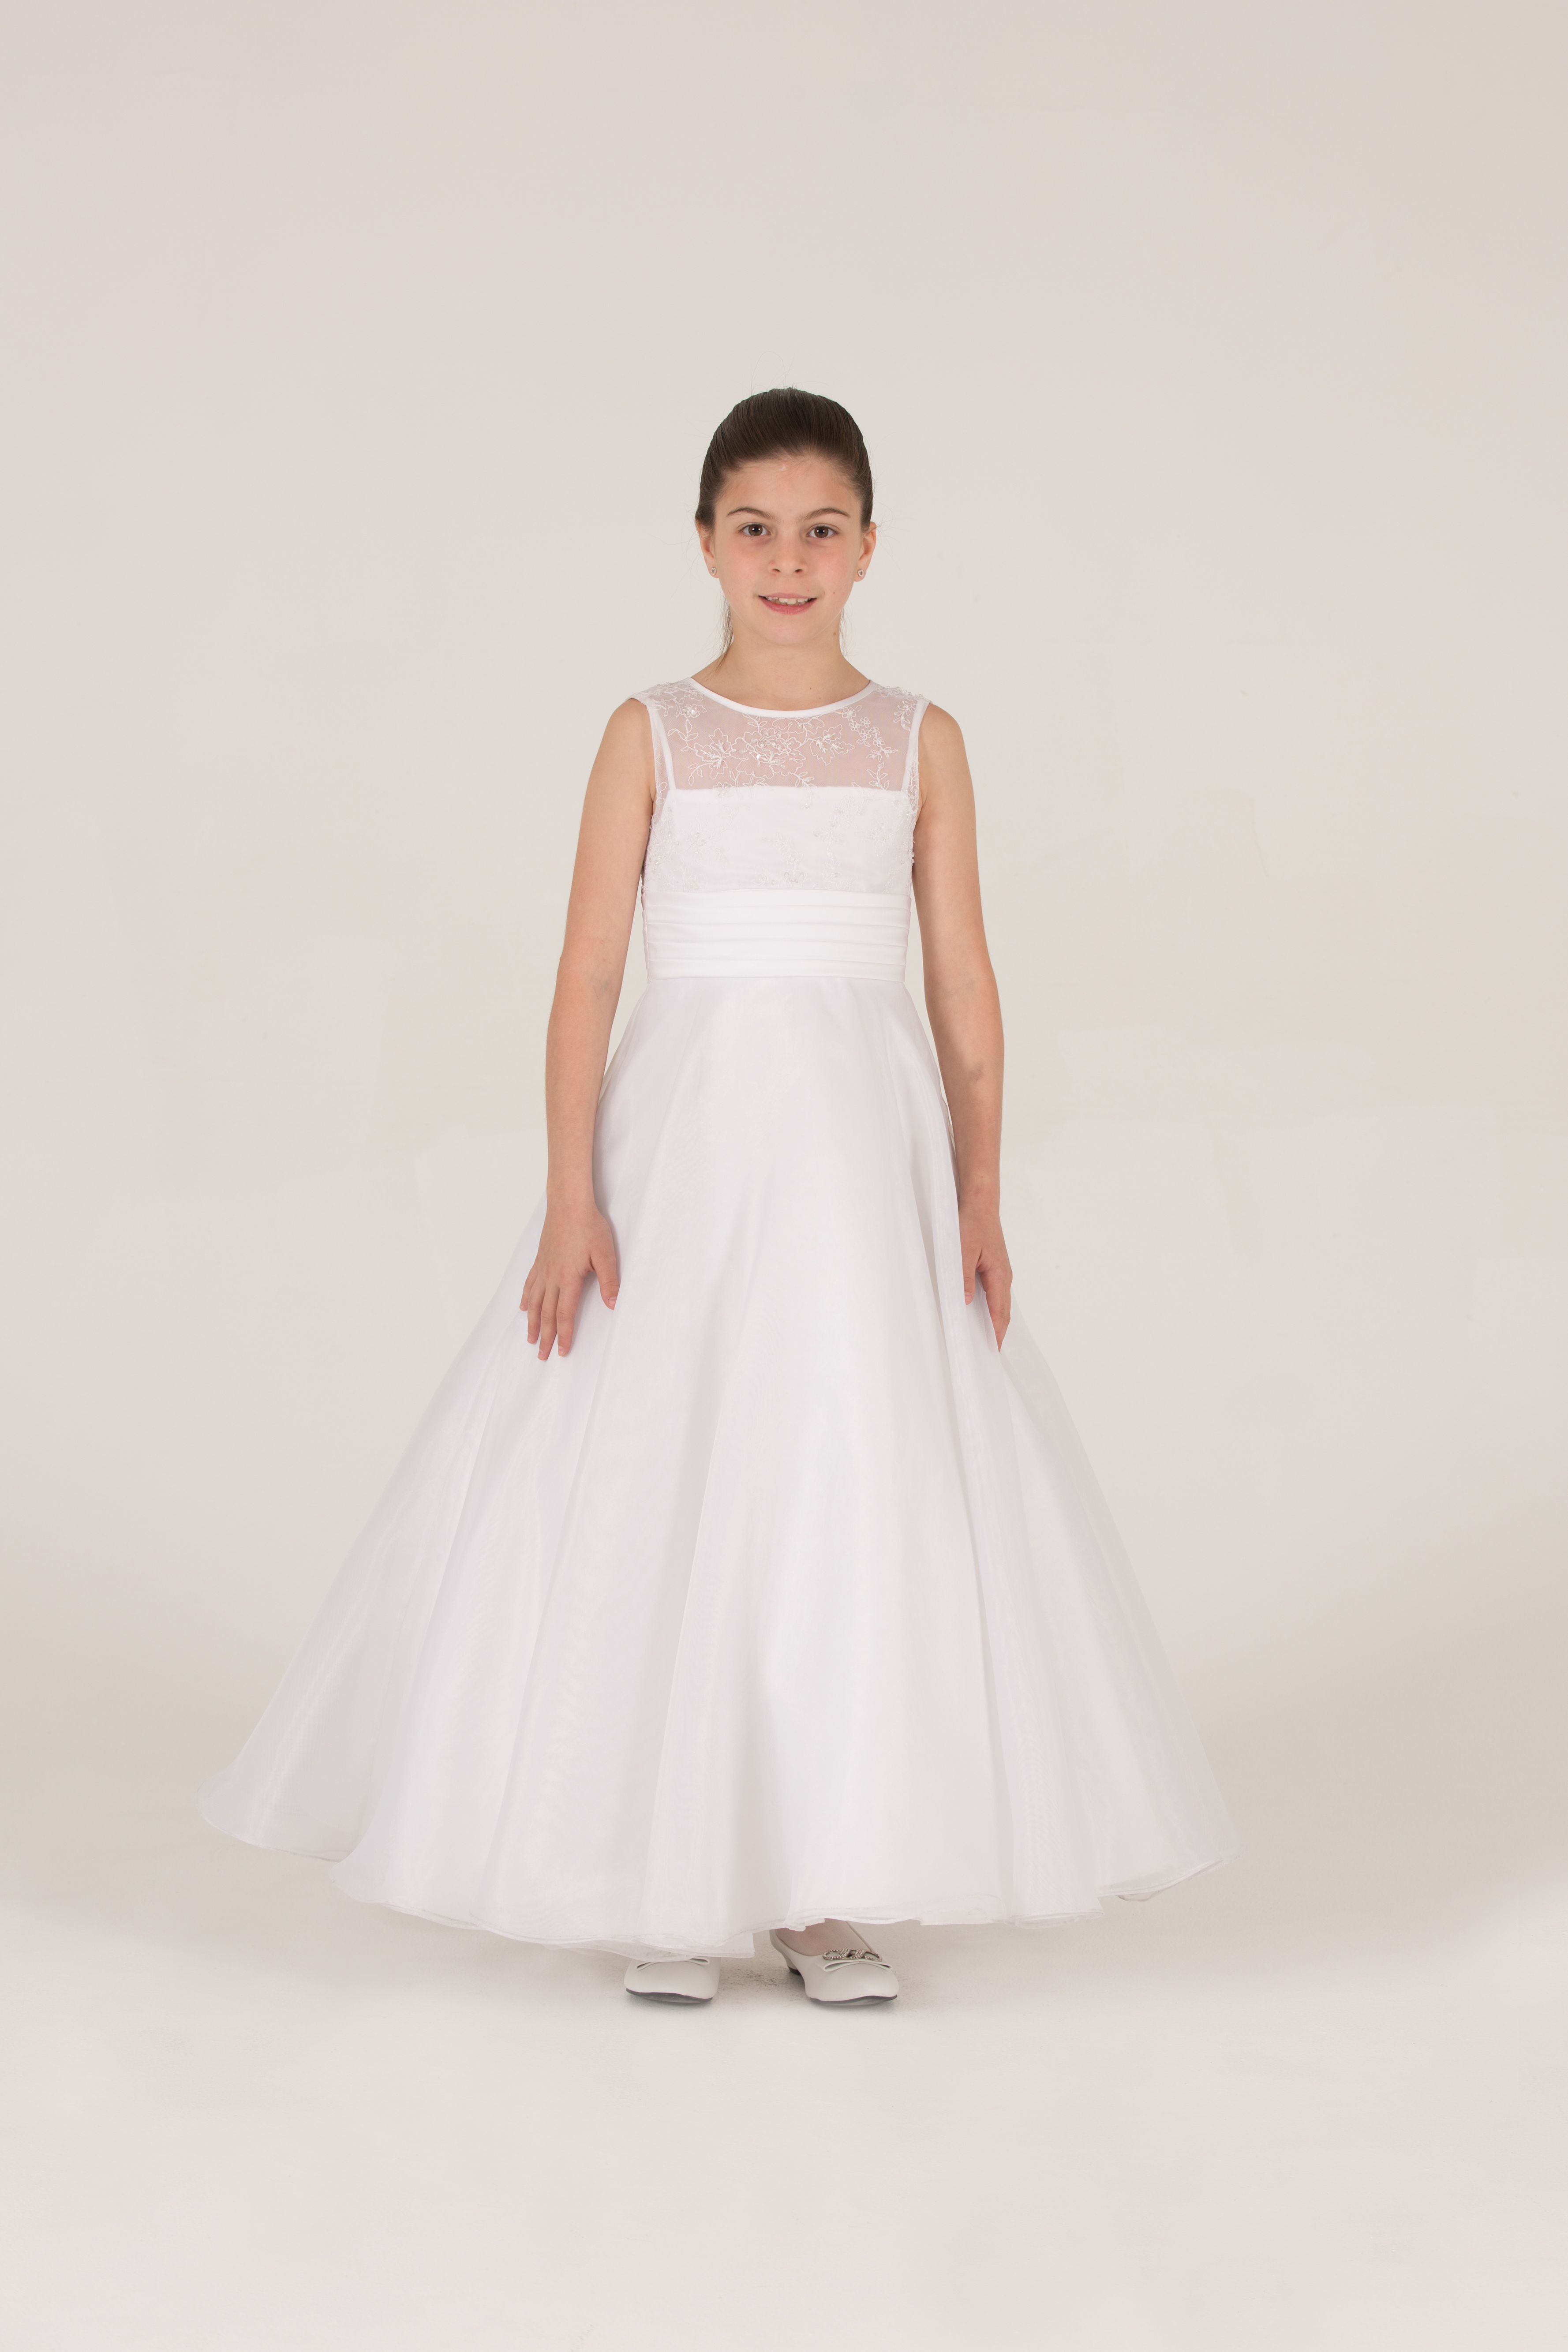 Communion Dresses Melbourne